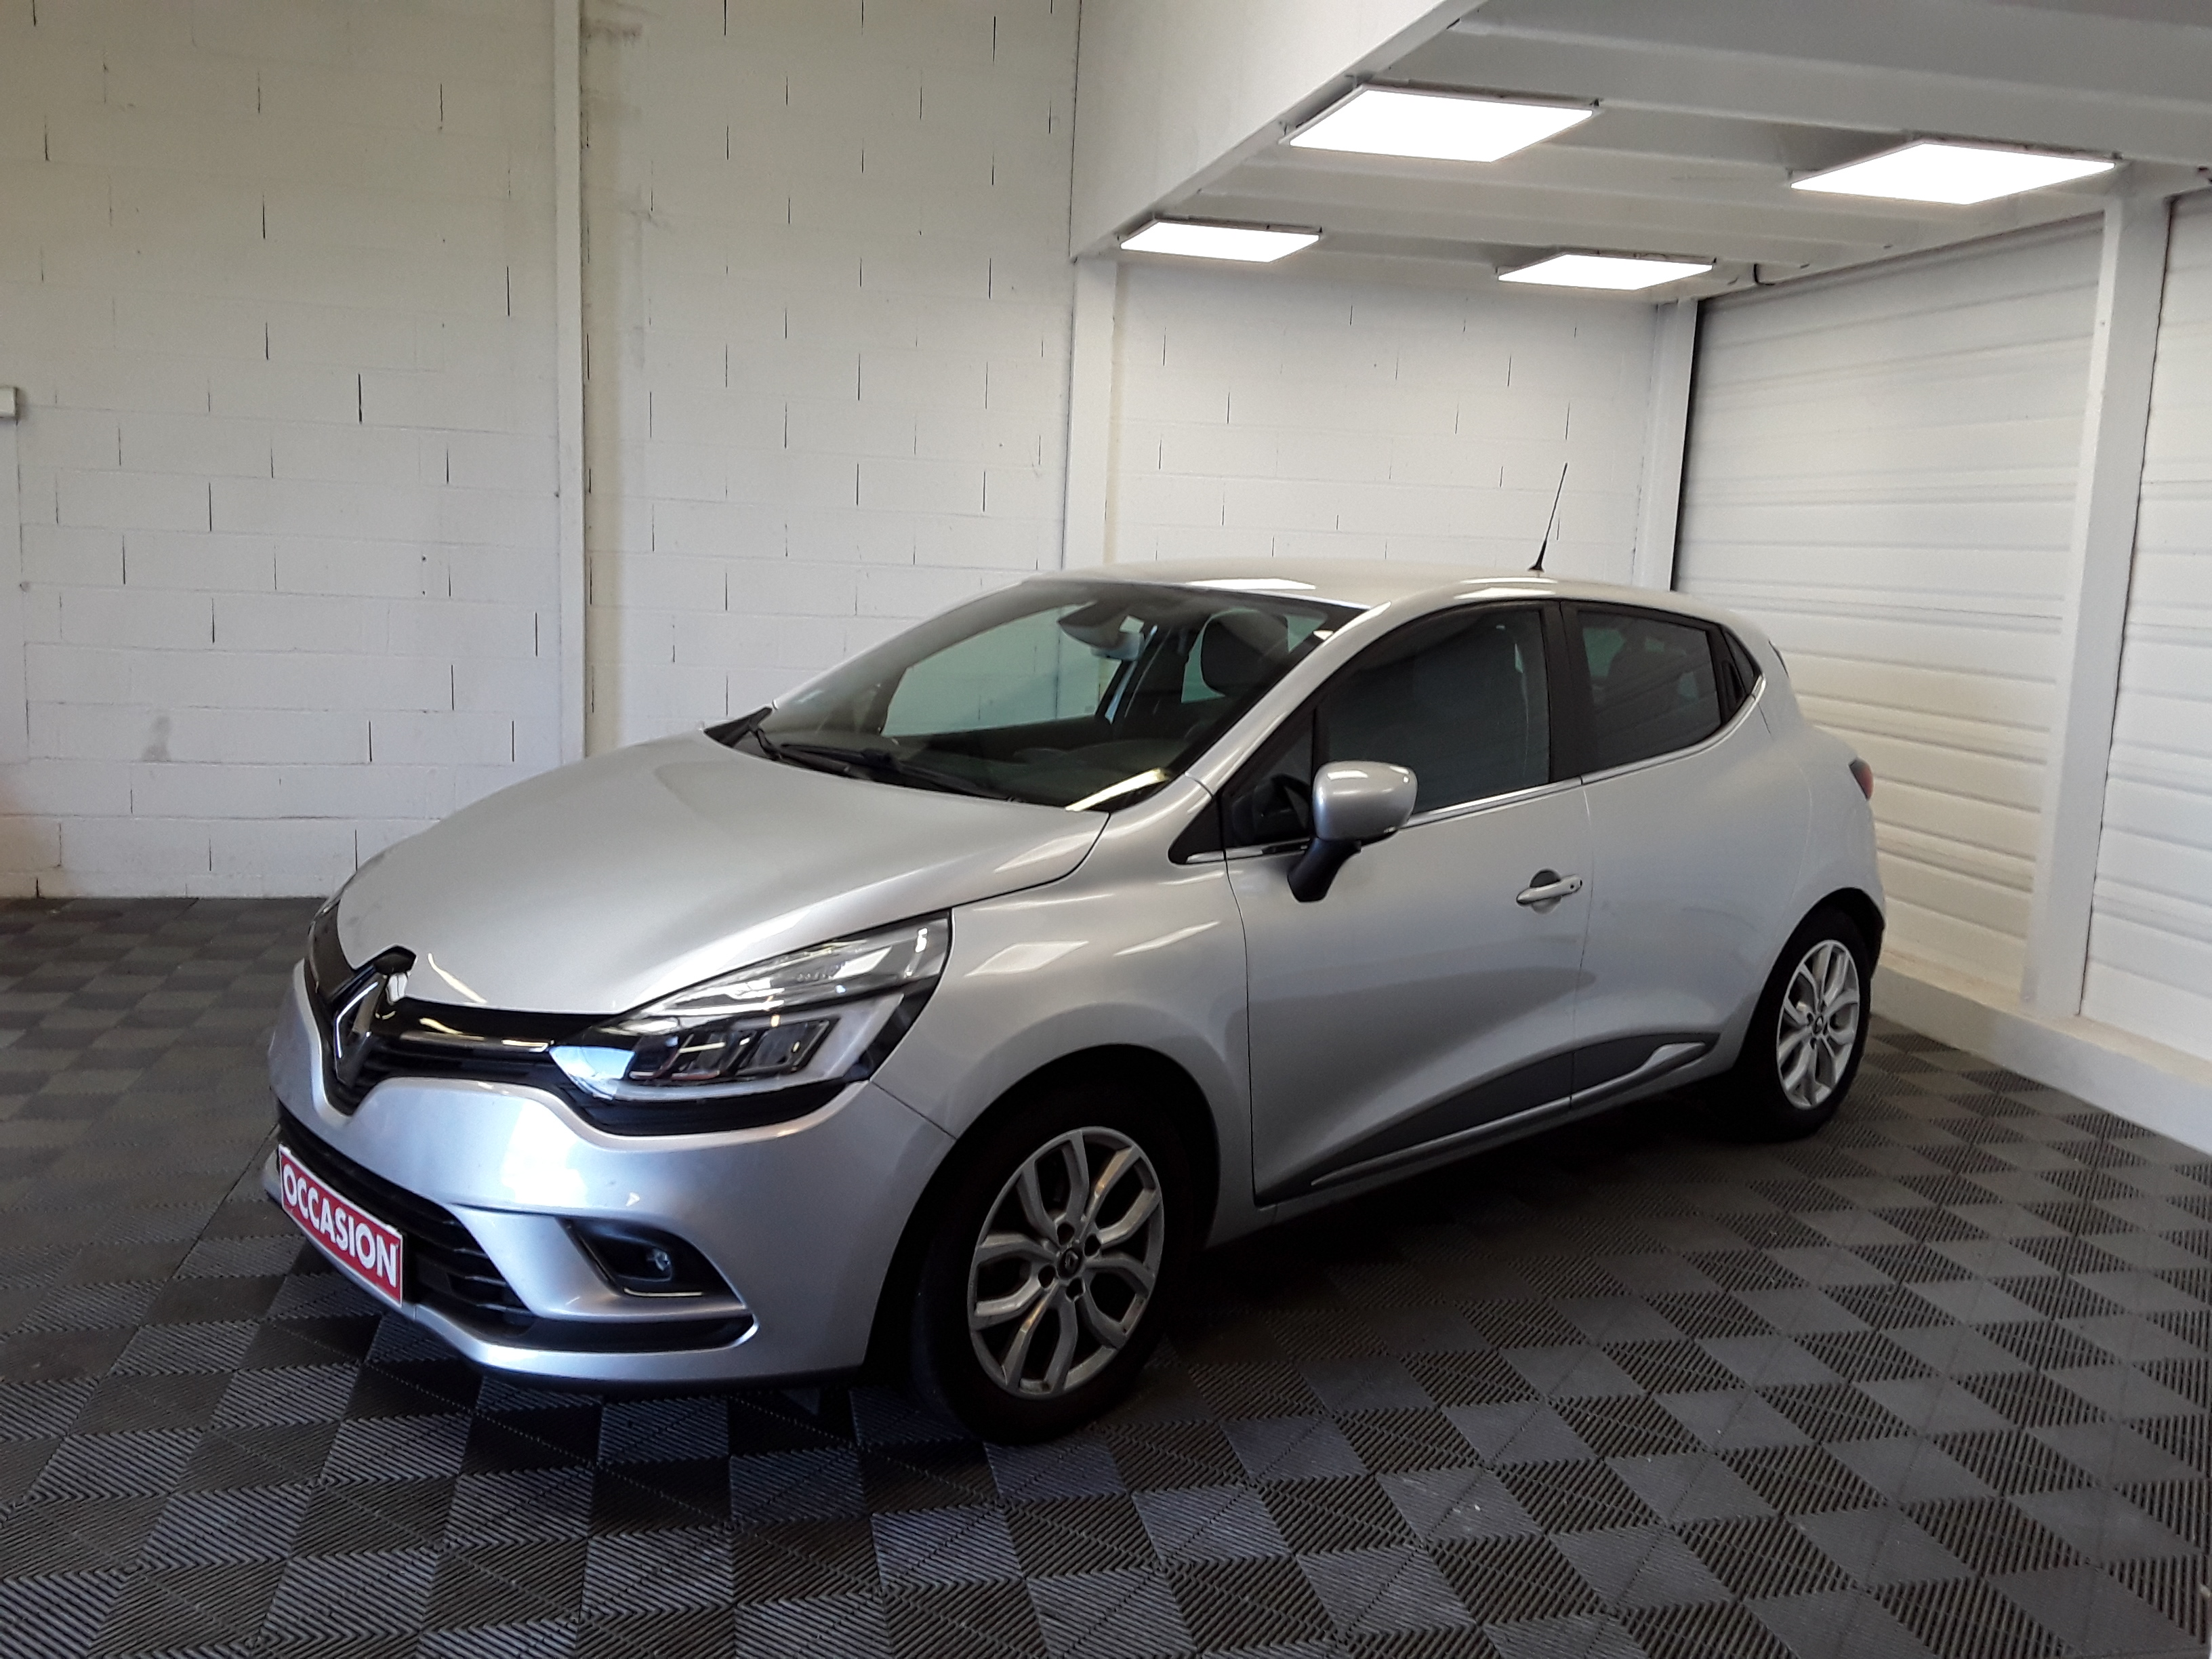 RENAULT CLIO IV INTENS ENERGY TCE 120 EDC d'occasion